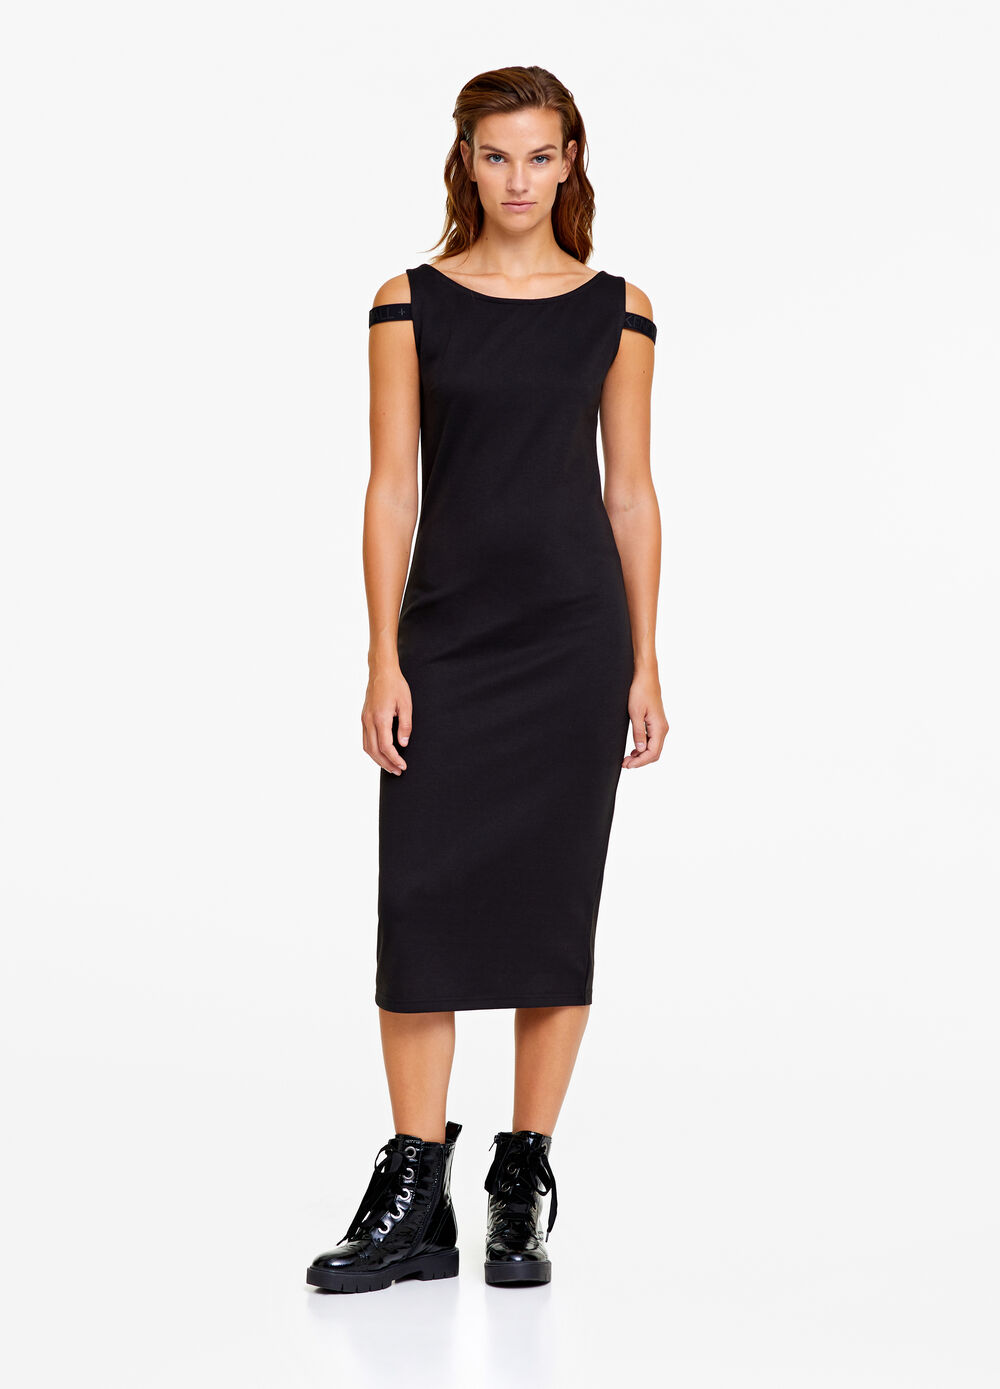 K+K for OVS sleeveless dress